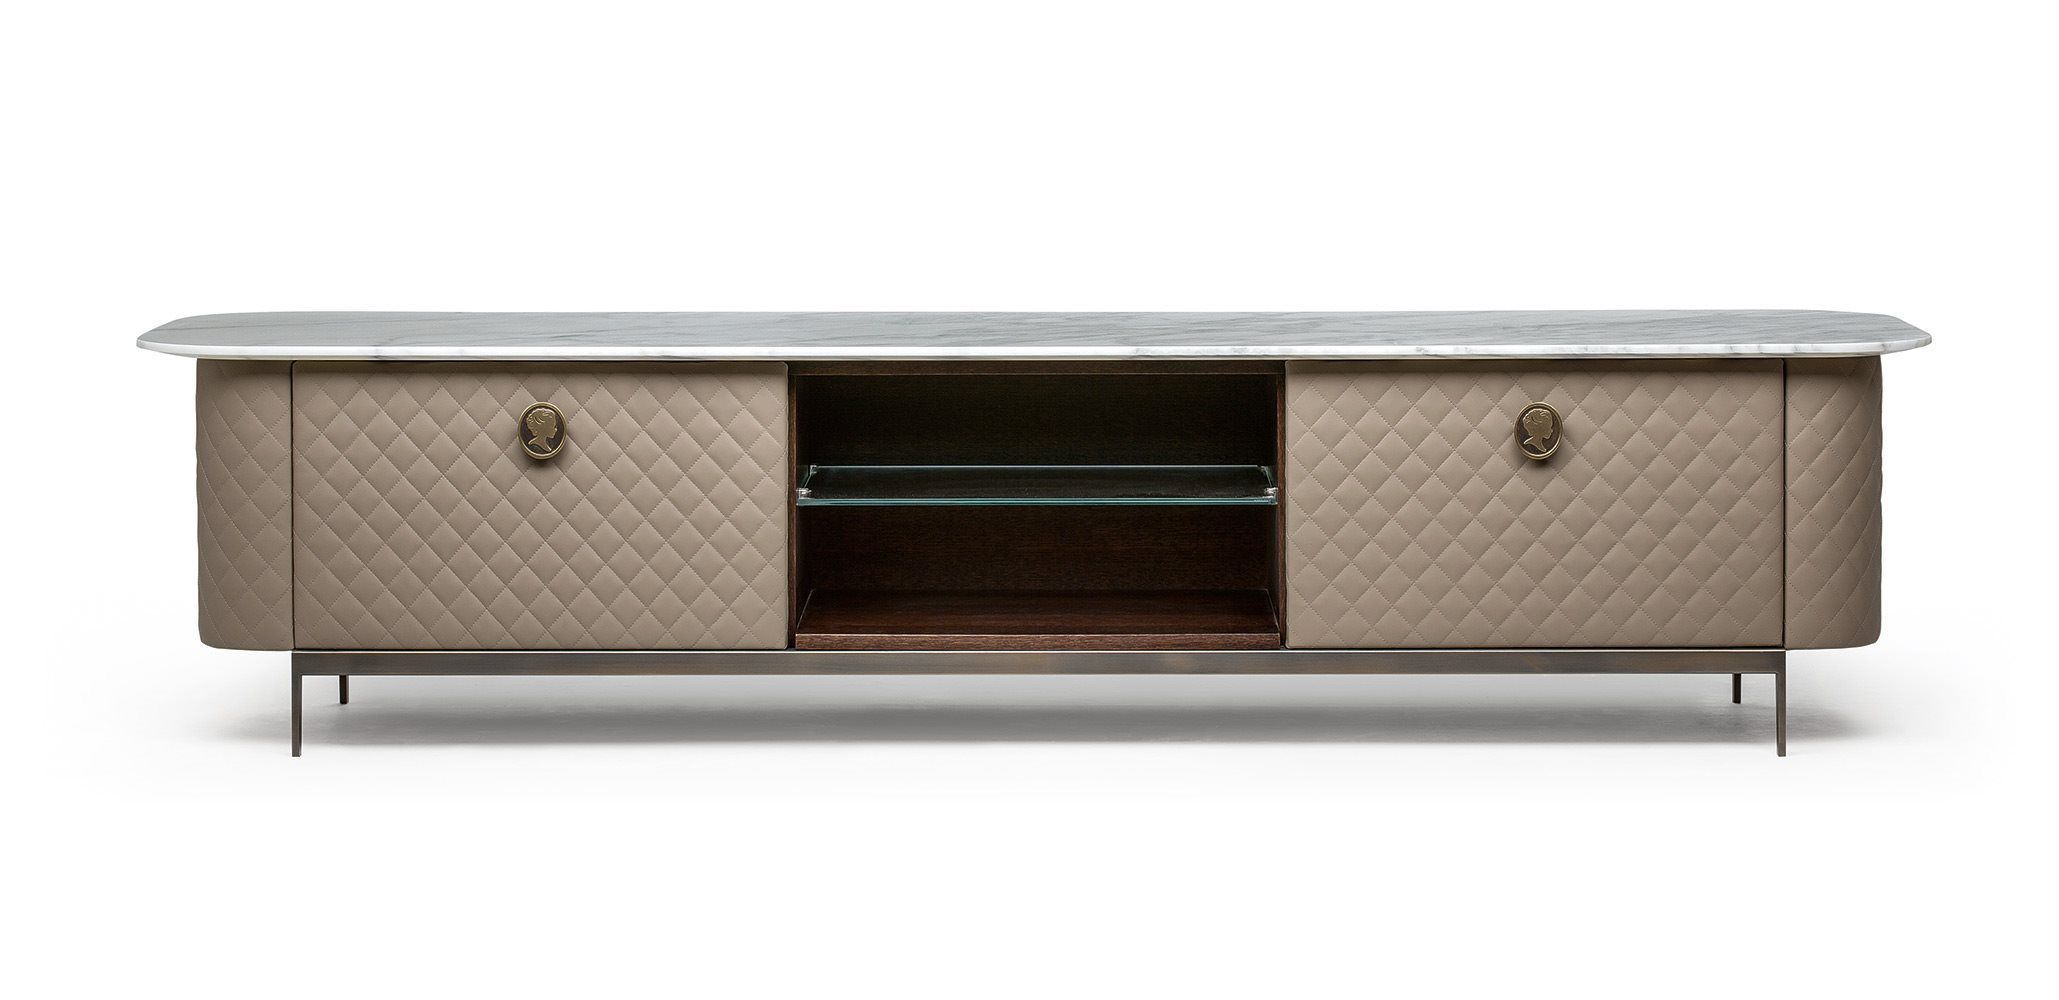 Art Deco Style Tv Cabinet Wooden Leather Penelope By  # Meuble Tv Wooden Art